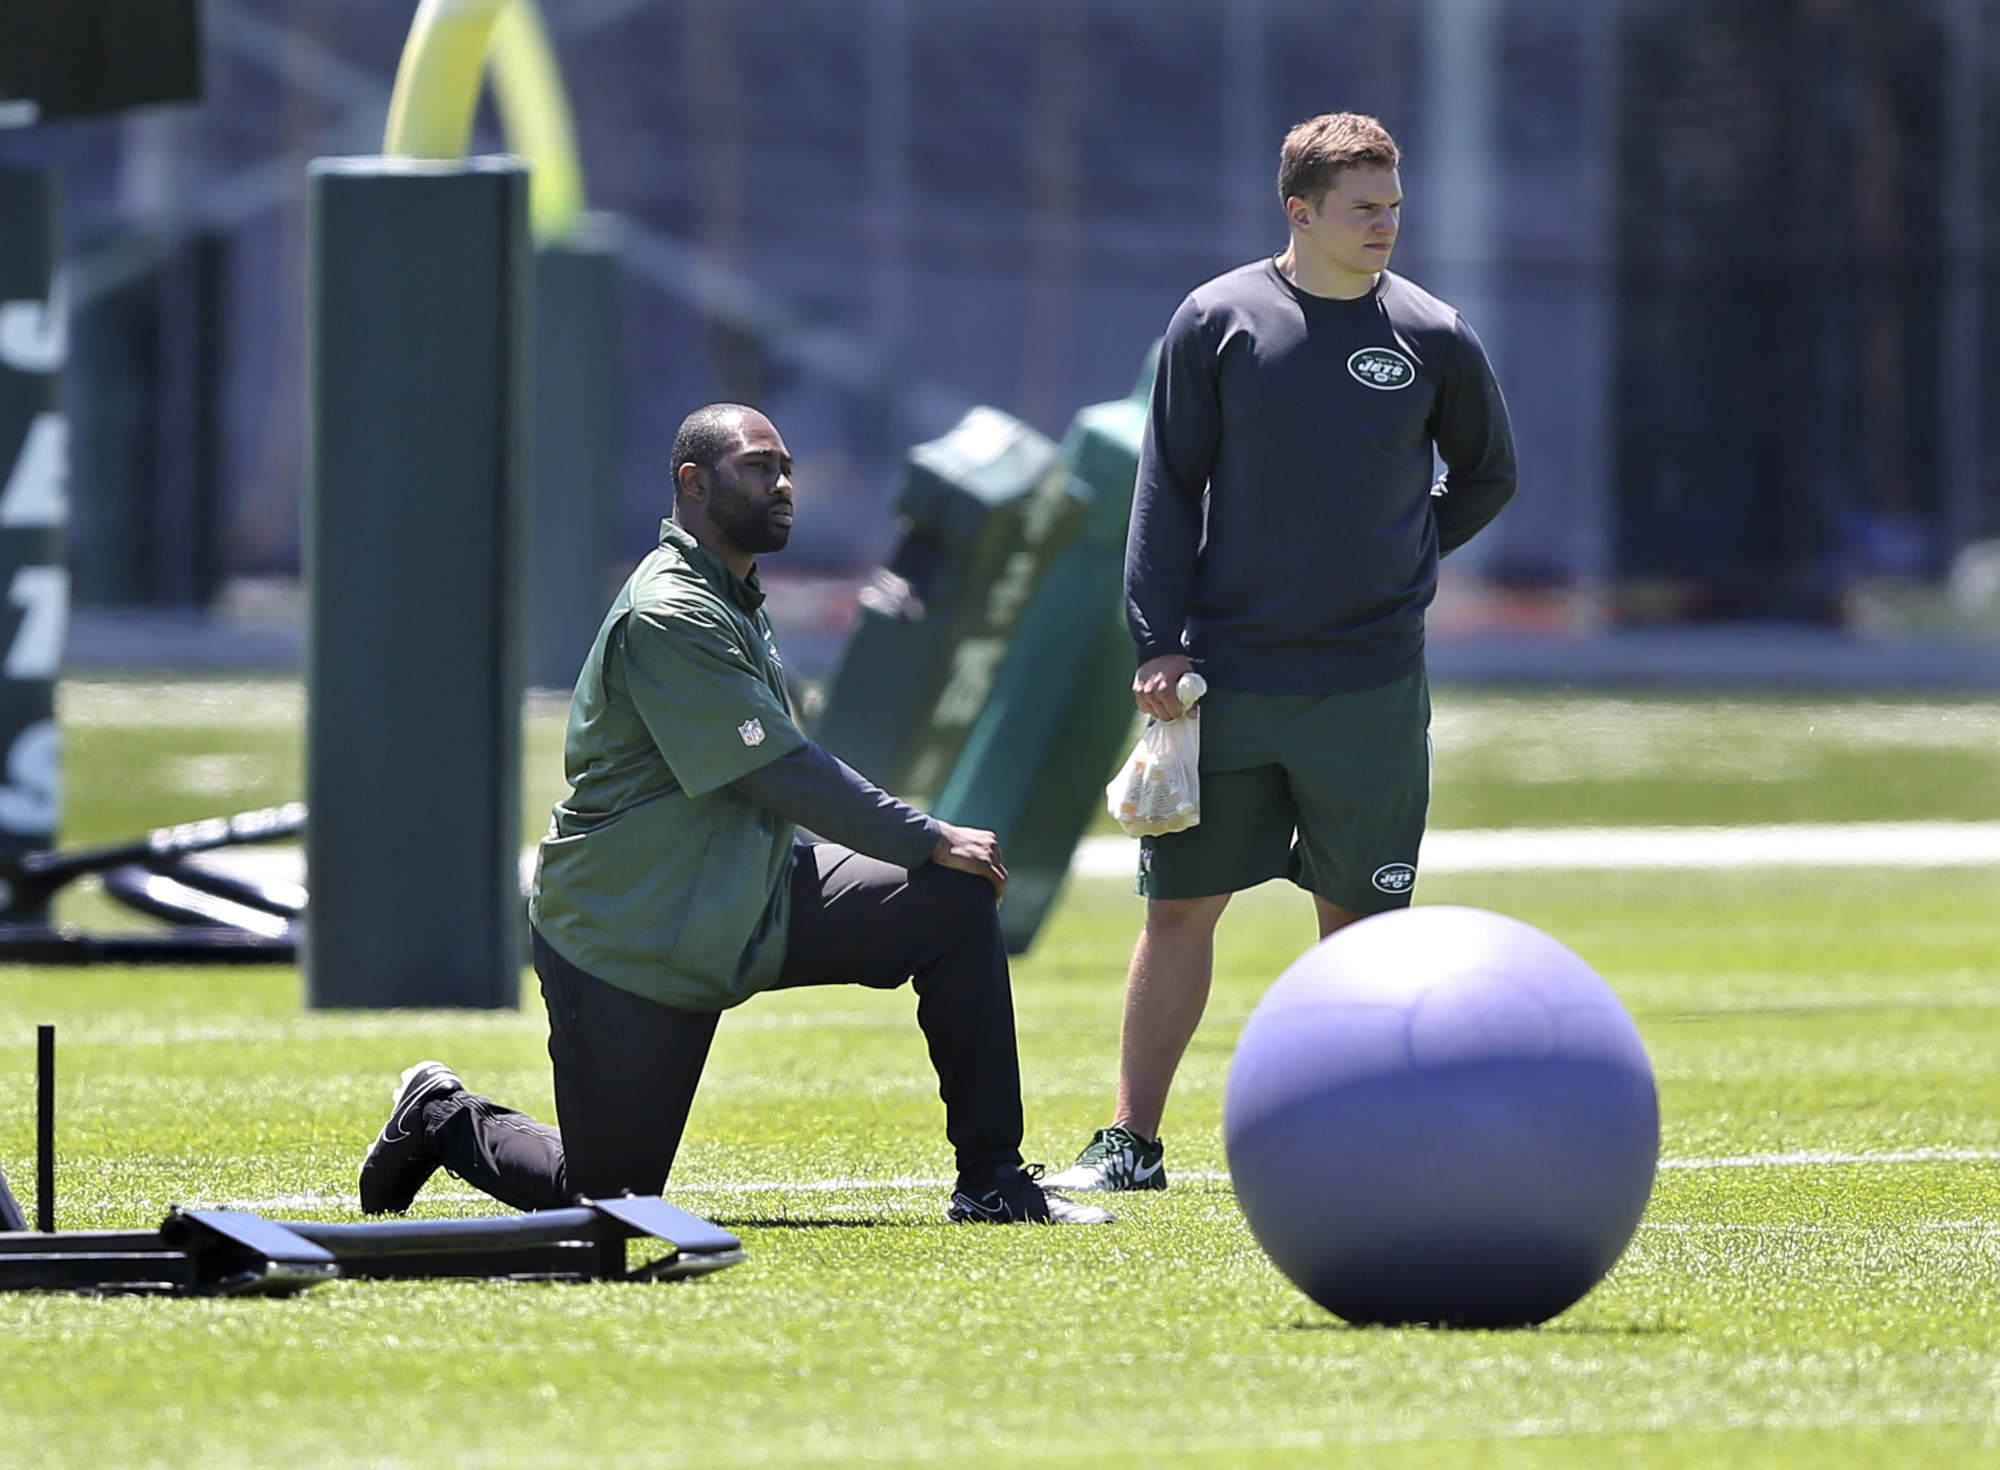 New York Jets cornerback Darrelle Revis, left, stretches during football practice Tuesday, June 14, 2016, in Florham Park, N.J. (AP Photo/Mel Evans)